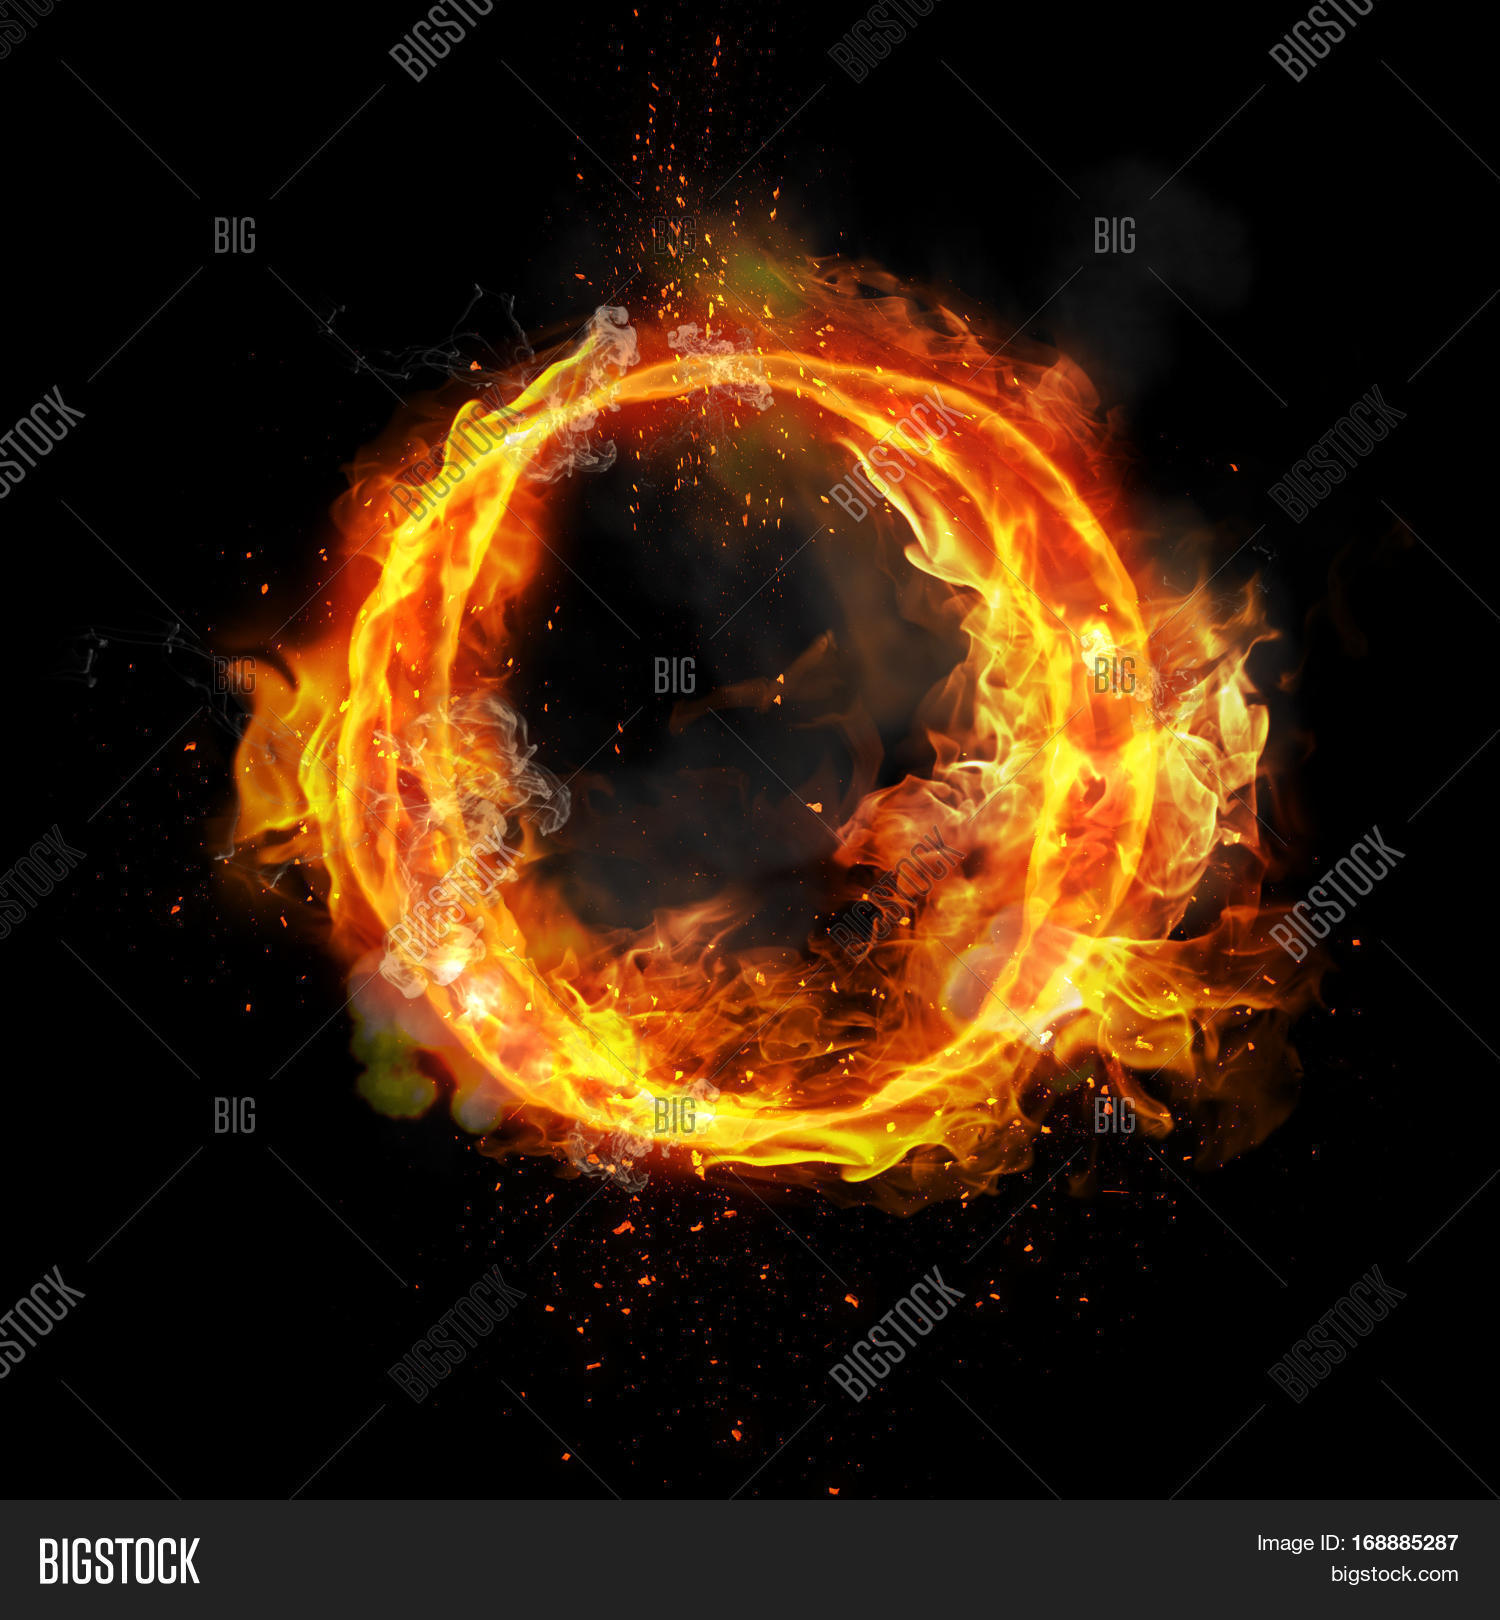 Fire Letter O Burning Image & Photo (Free Trial) | Bigstock